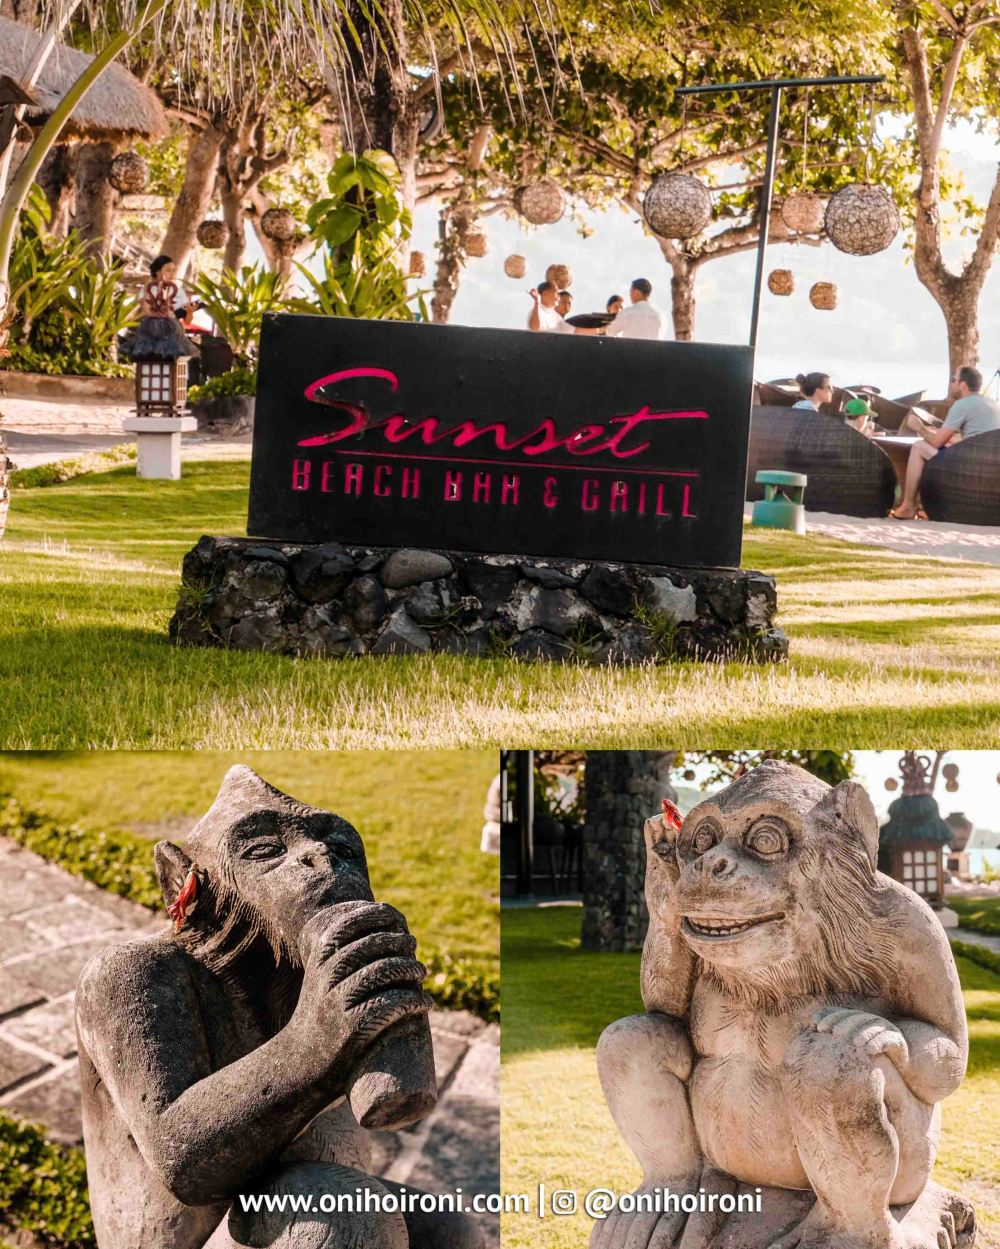 8 Sunset beach bar and grill intercontinental bali resort oni hoironi restaurant di jimbaran copy